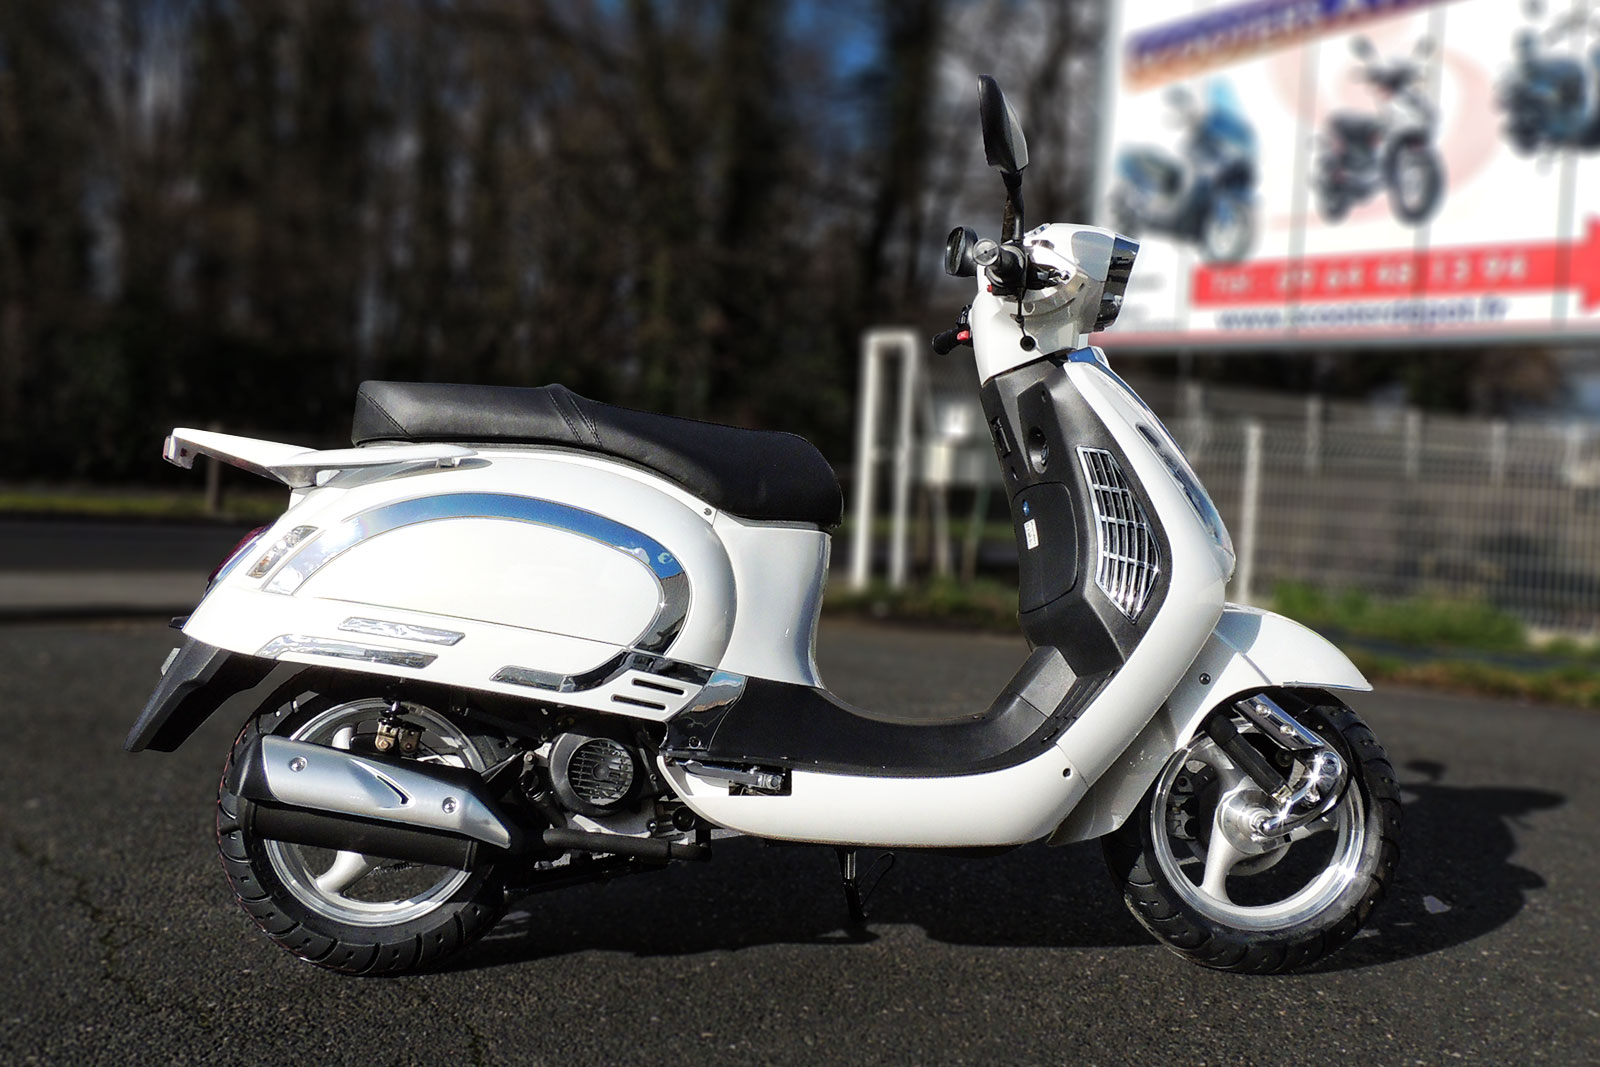 SCOOTER-50-ECCHO-EAGLE-WING-03